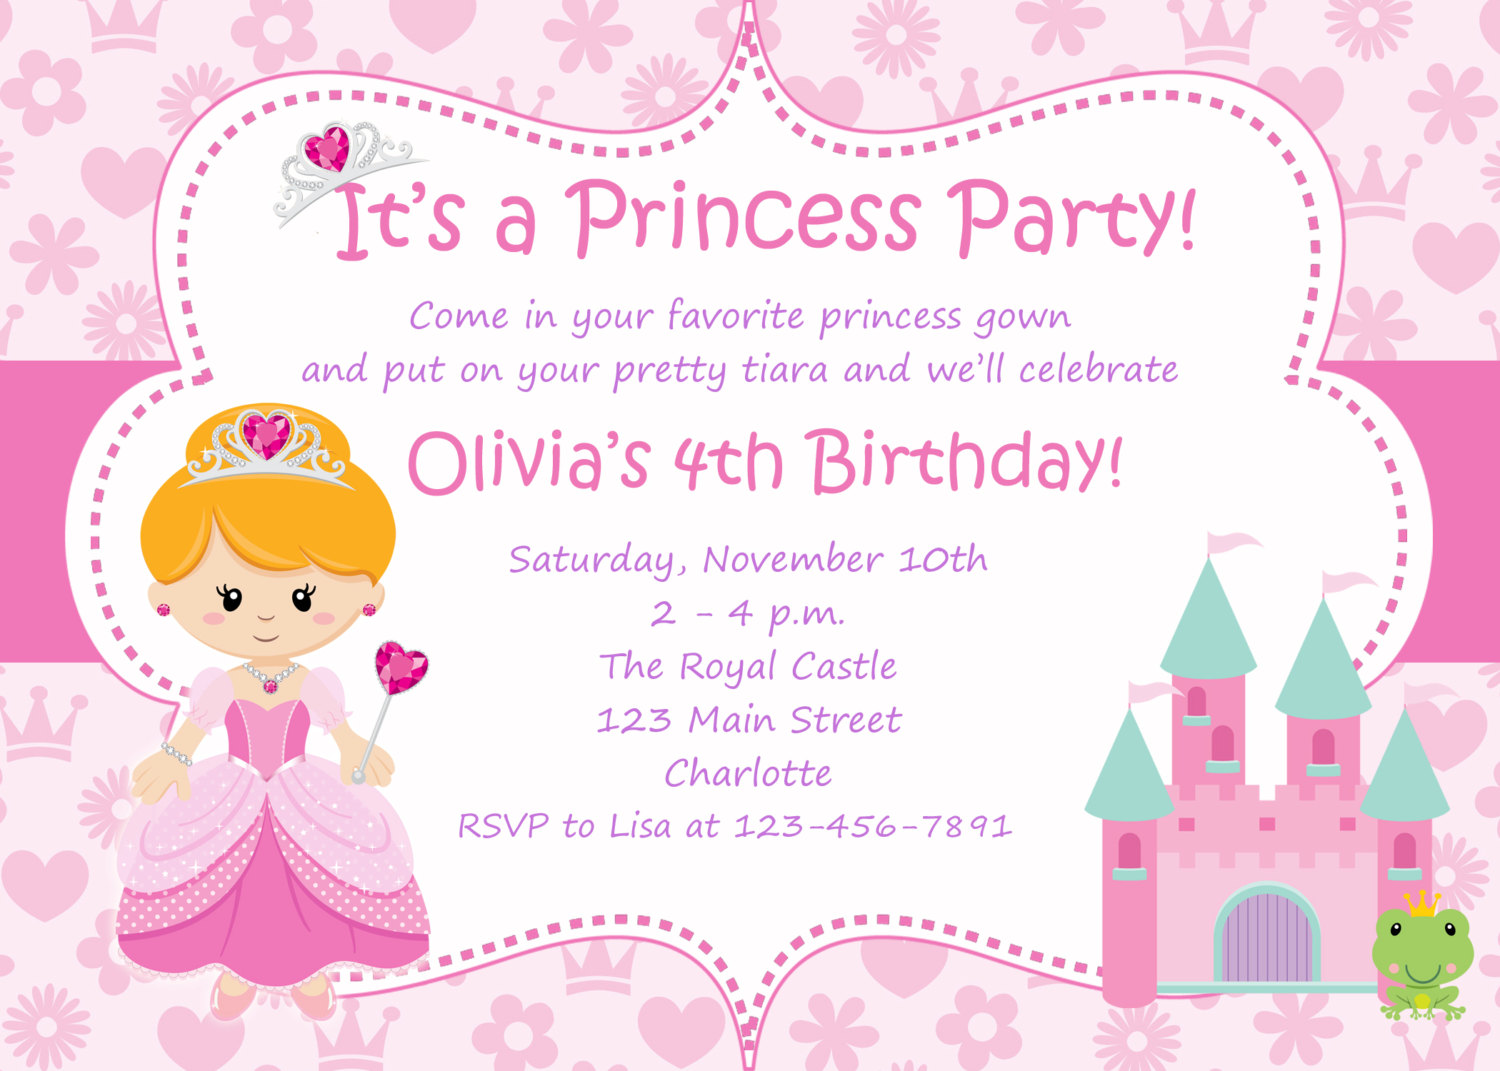 princess birthday invitation template ; Princess-birthday-invitations-for-a-chic-birthday-invitation-design-with-chic-layout-1